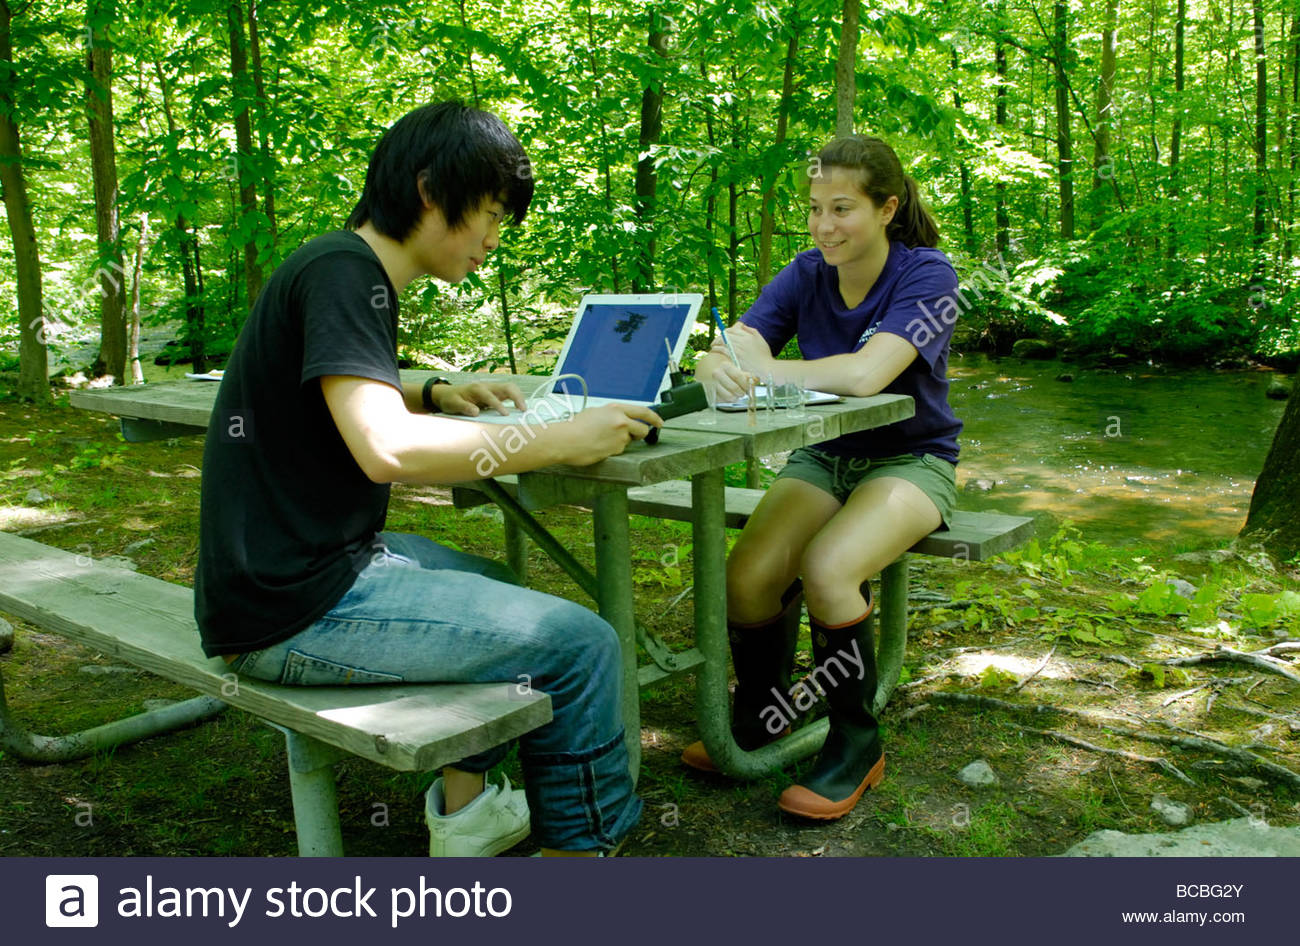 Two teens using a laptop interfaced sensor to measure the water quality of a stream Stock Photo